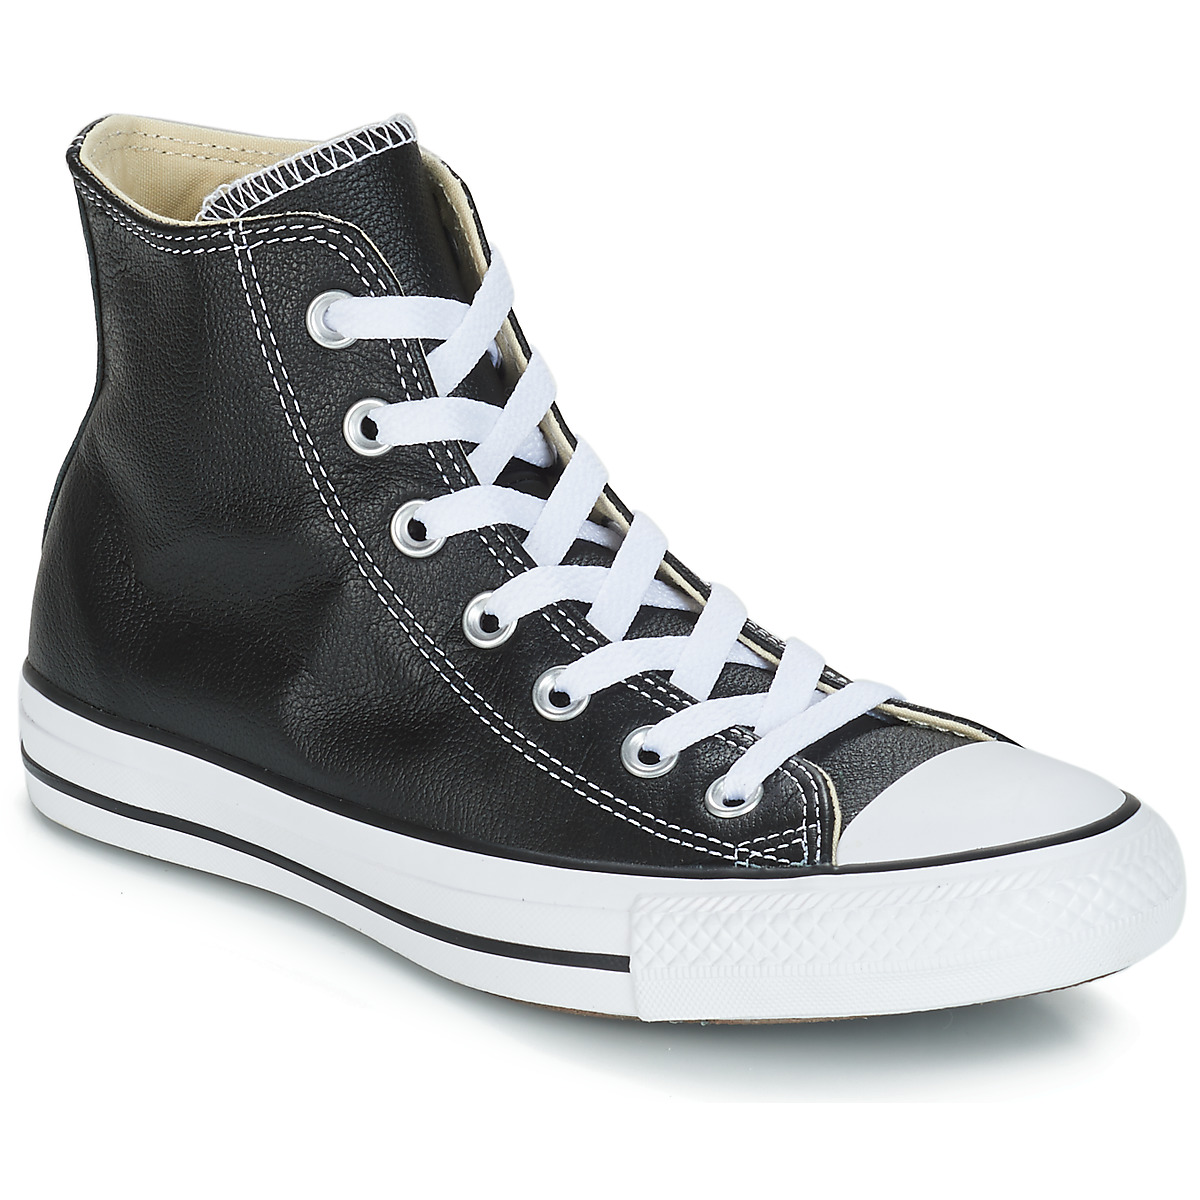 Converse Chuck Taylor All Star CORE LEATHER HI Preto